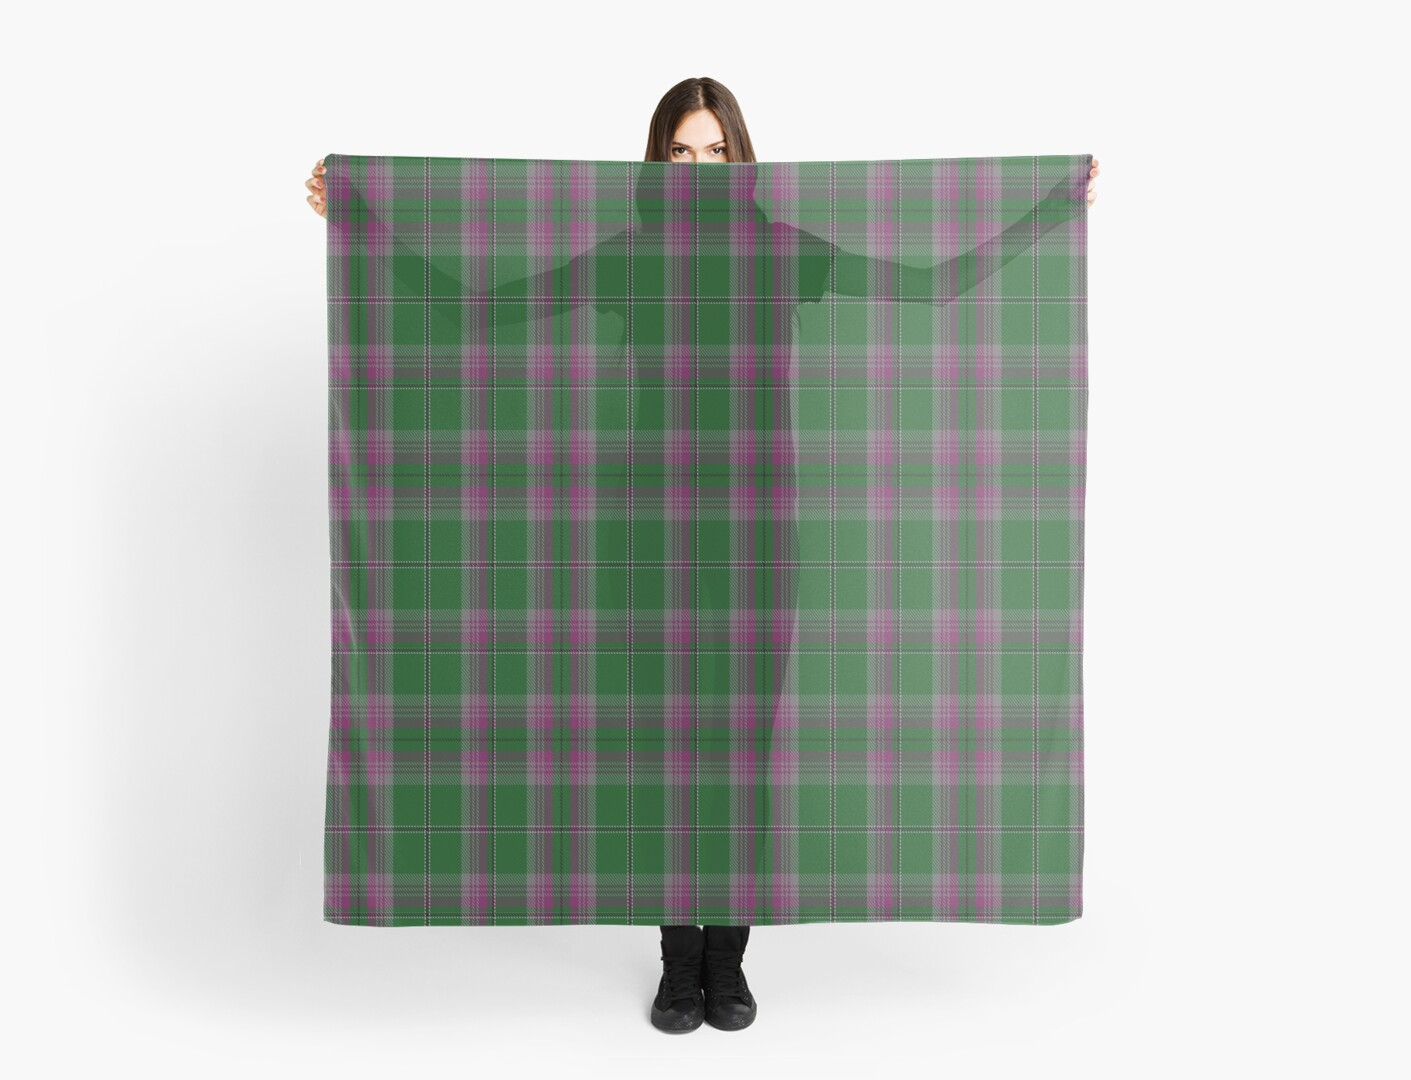 00055 Gray Clan/Family (Hunting) Tartan  by Detnecs2013